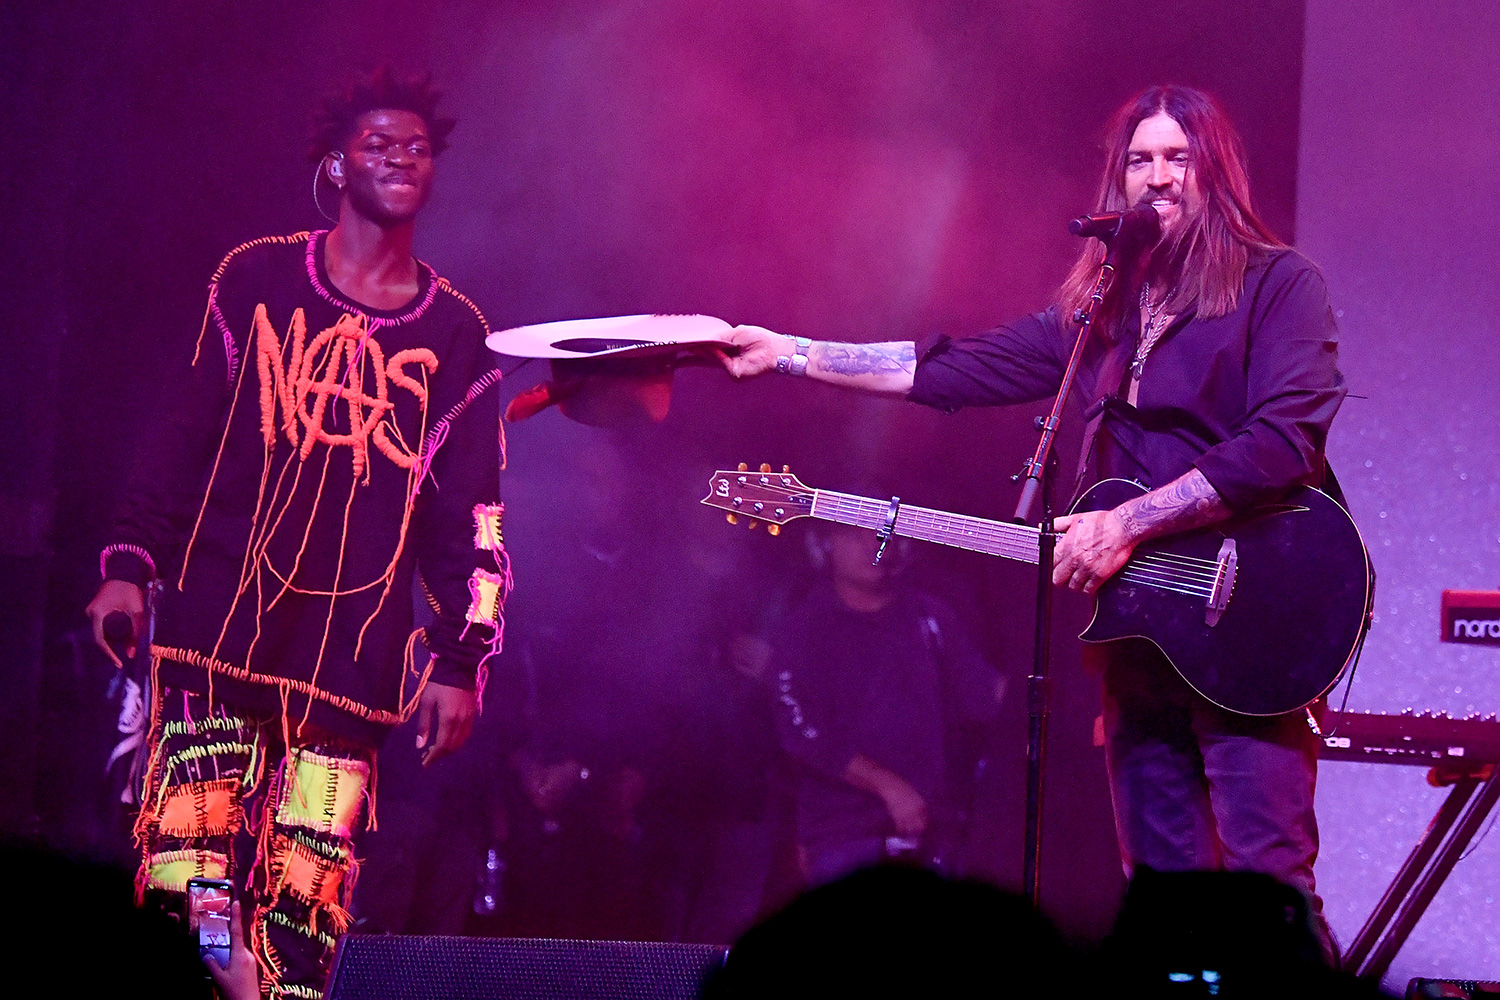 """Lil Nas X and Billy Ray Cyrus perform onstage during Spotify Hosts """"Best New Artist"""" Party at The Lot Studios on January 23, 2020 in Los Angeles, California"""